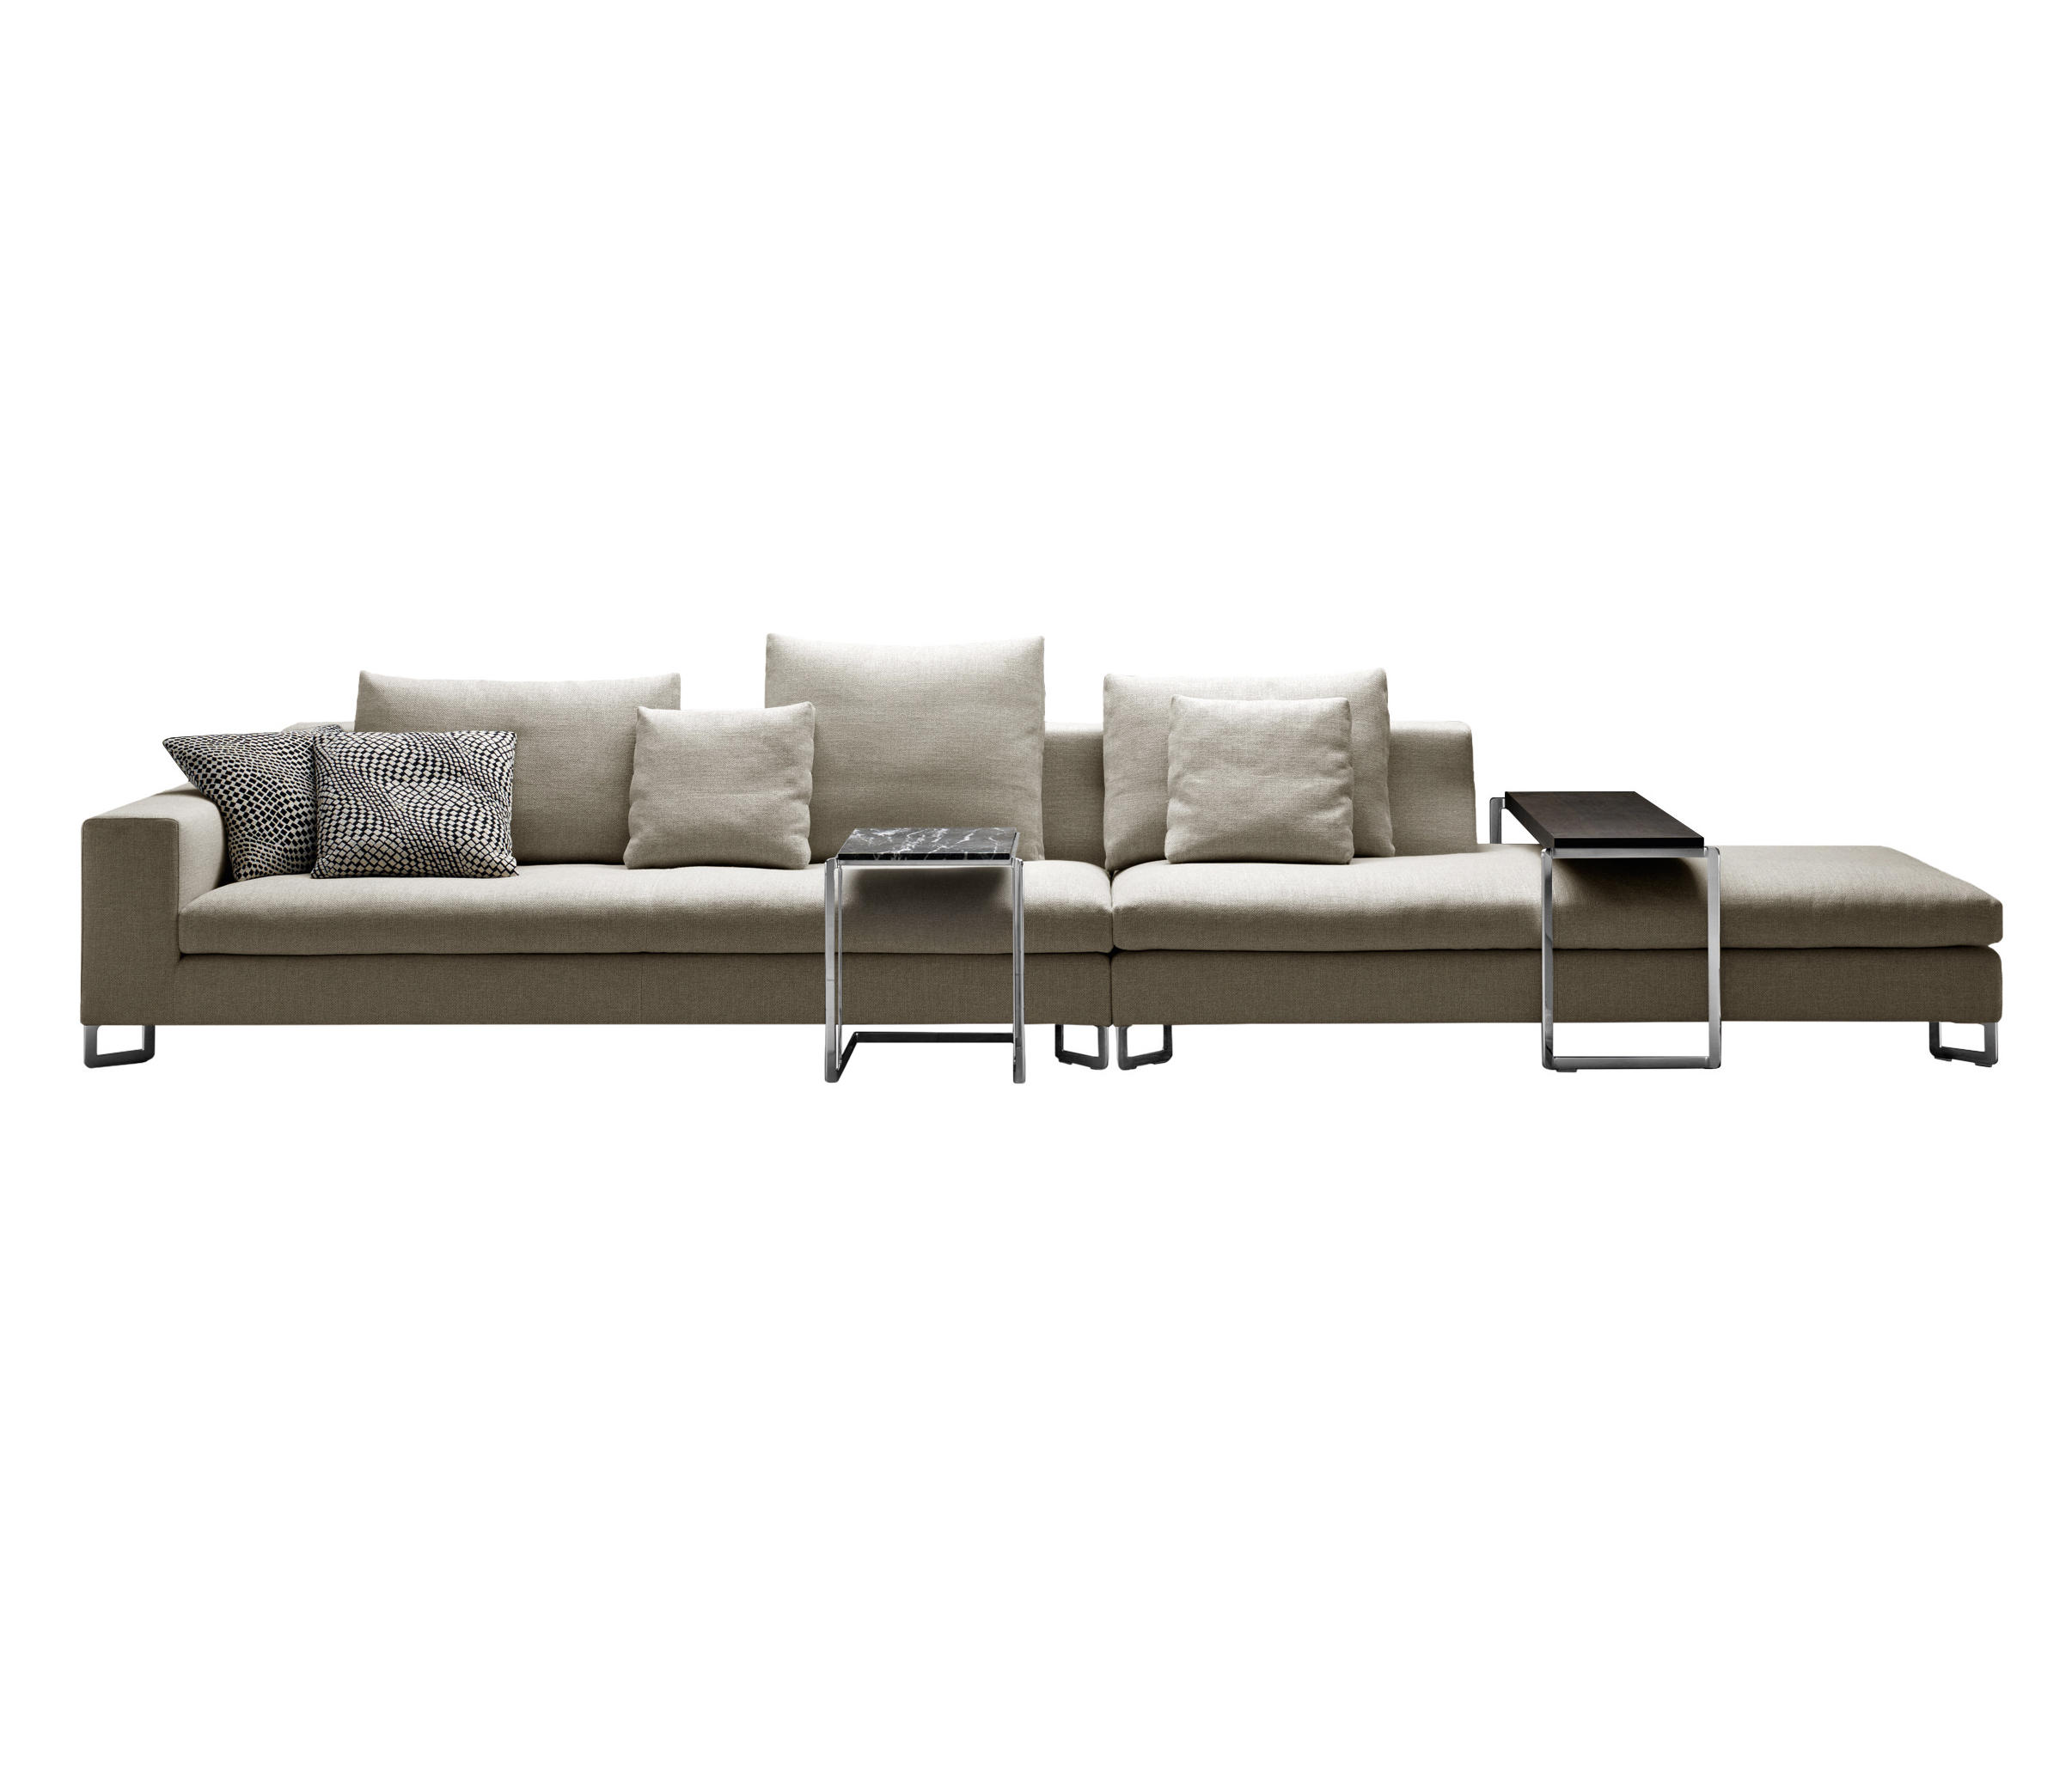 LARGE SOFA Lounge sofas from Molteni & C